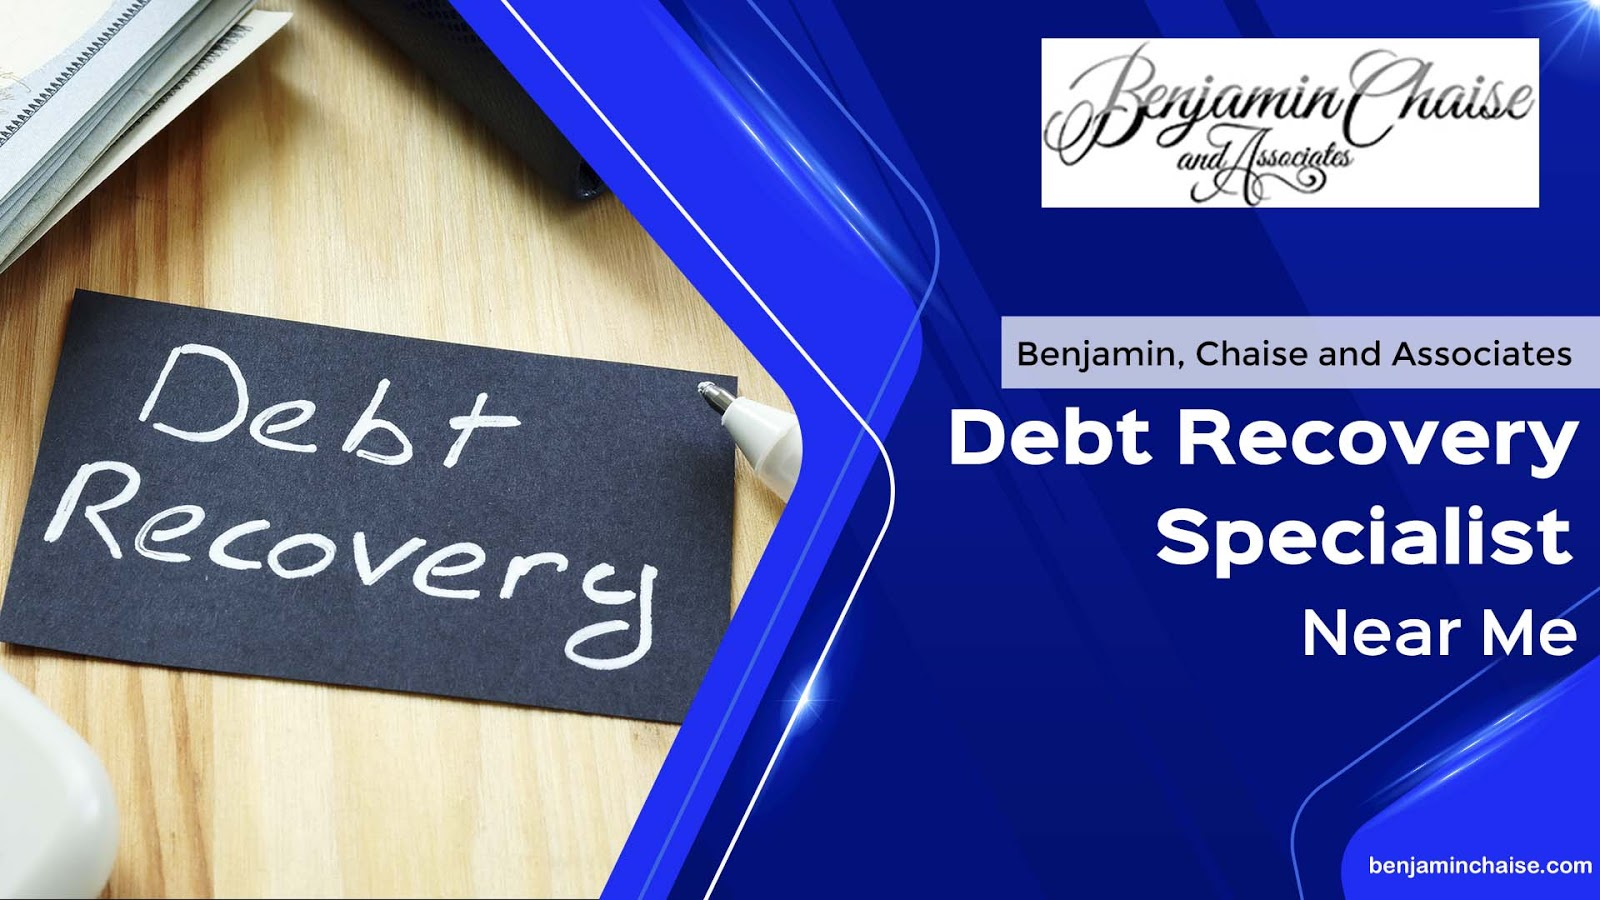 Debt Recovery Specialists Near Me